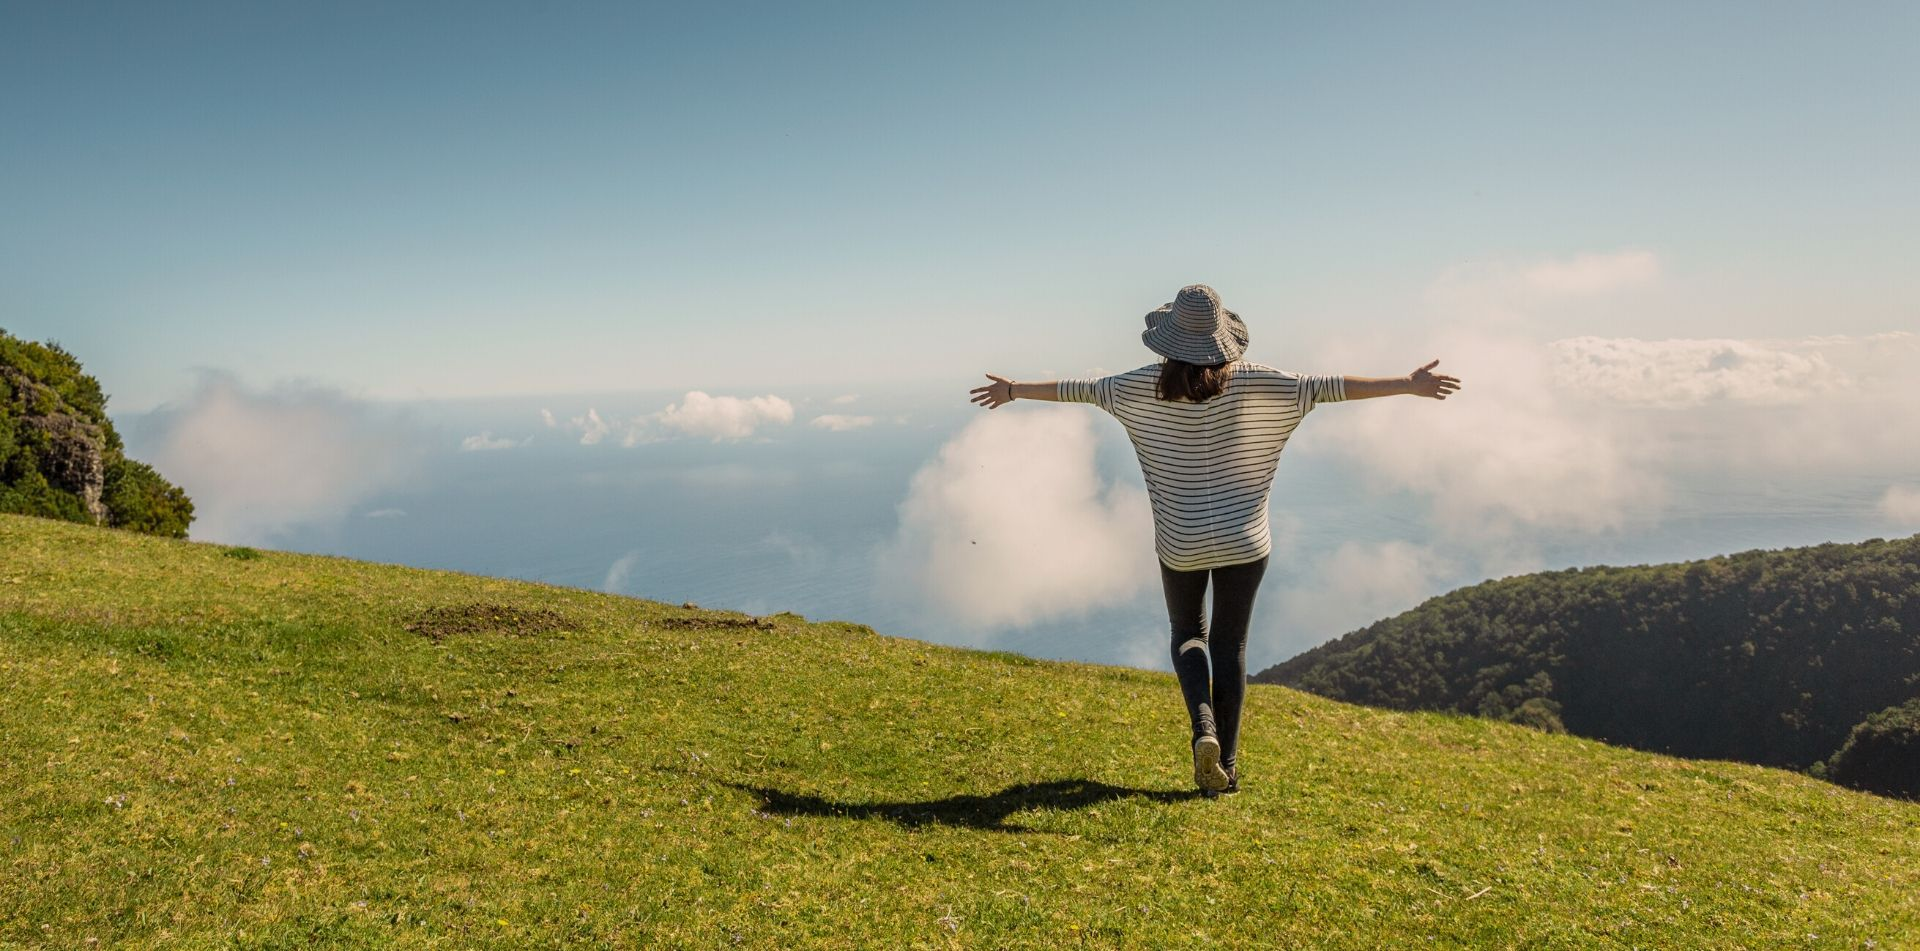 traveling woman with open arms in a field overlooking the ocean - luxury vacation destinations